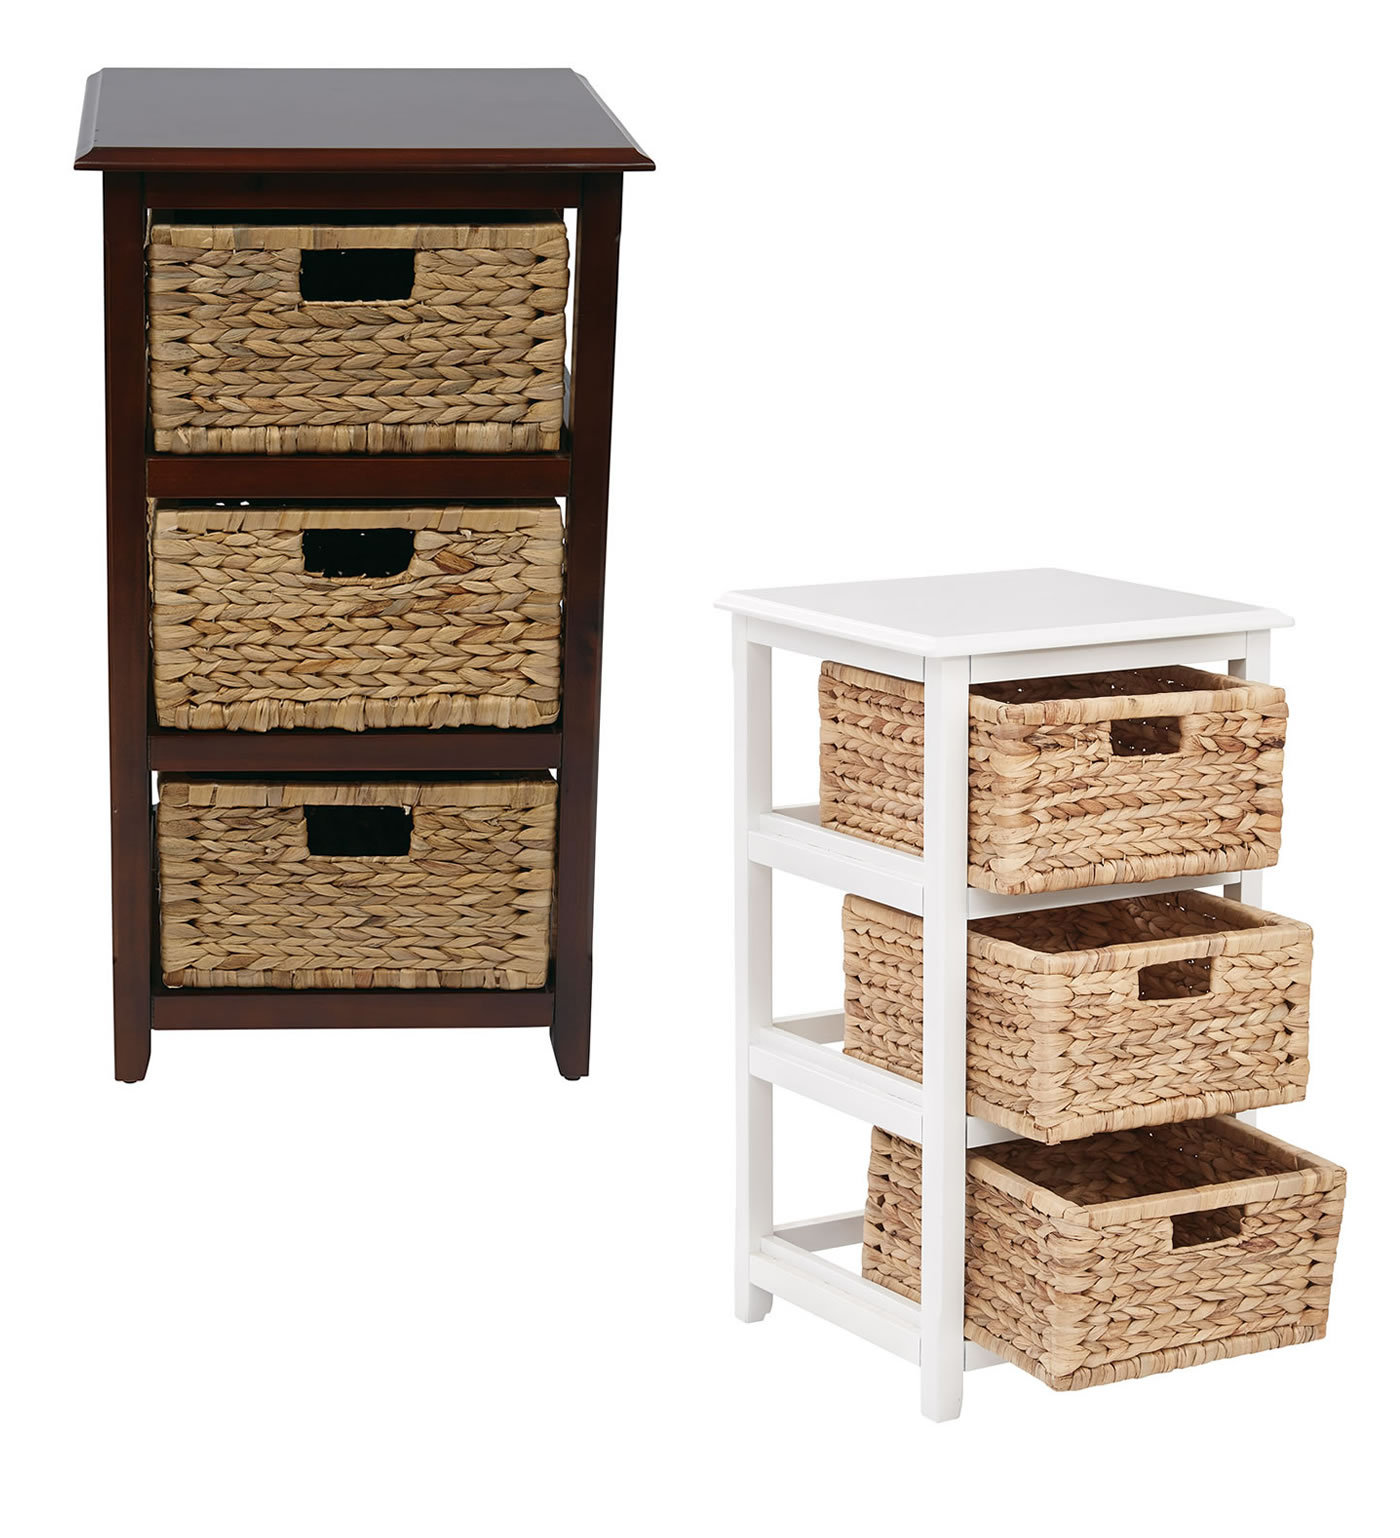 Amazing photo of  Wood Storage Tower w/Baskets Bedrm Side Table Storage Bins & Baskets with #936738 color and 1400x1538 pixels